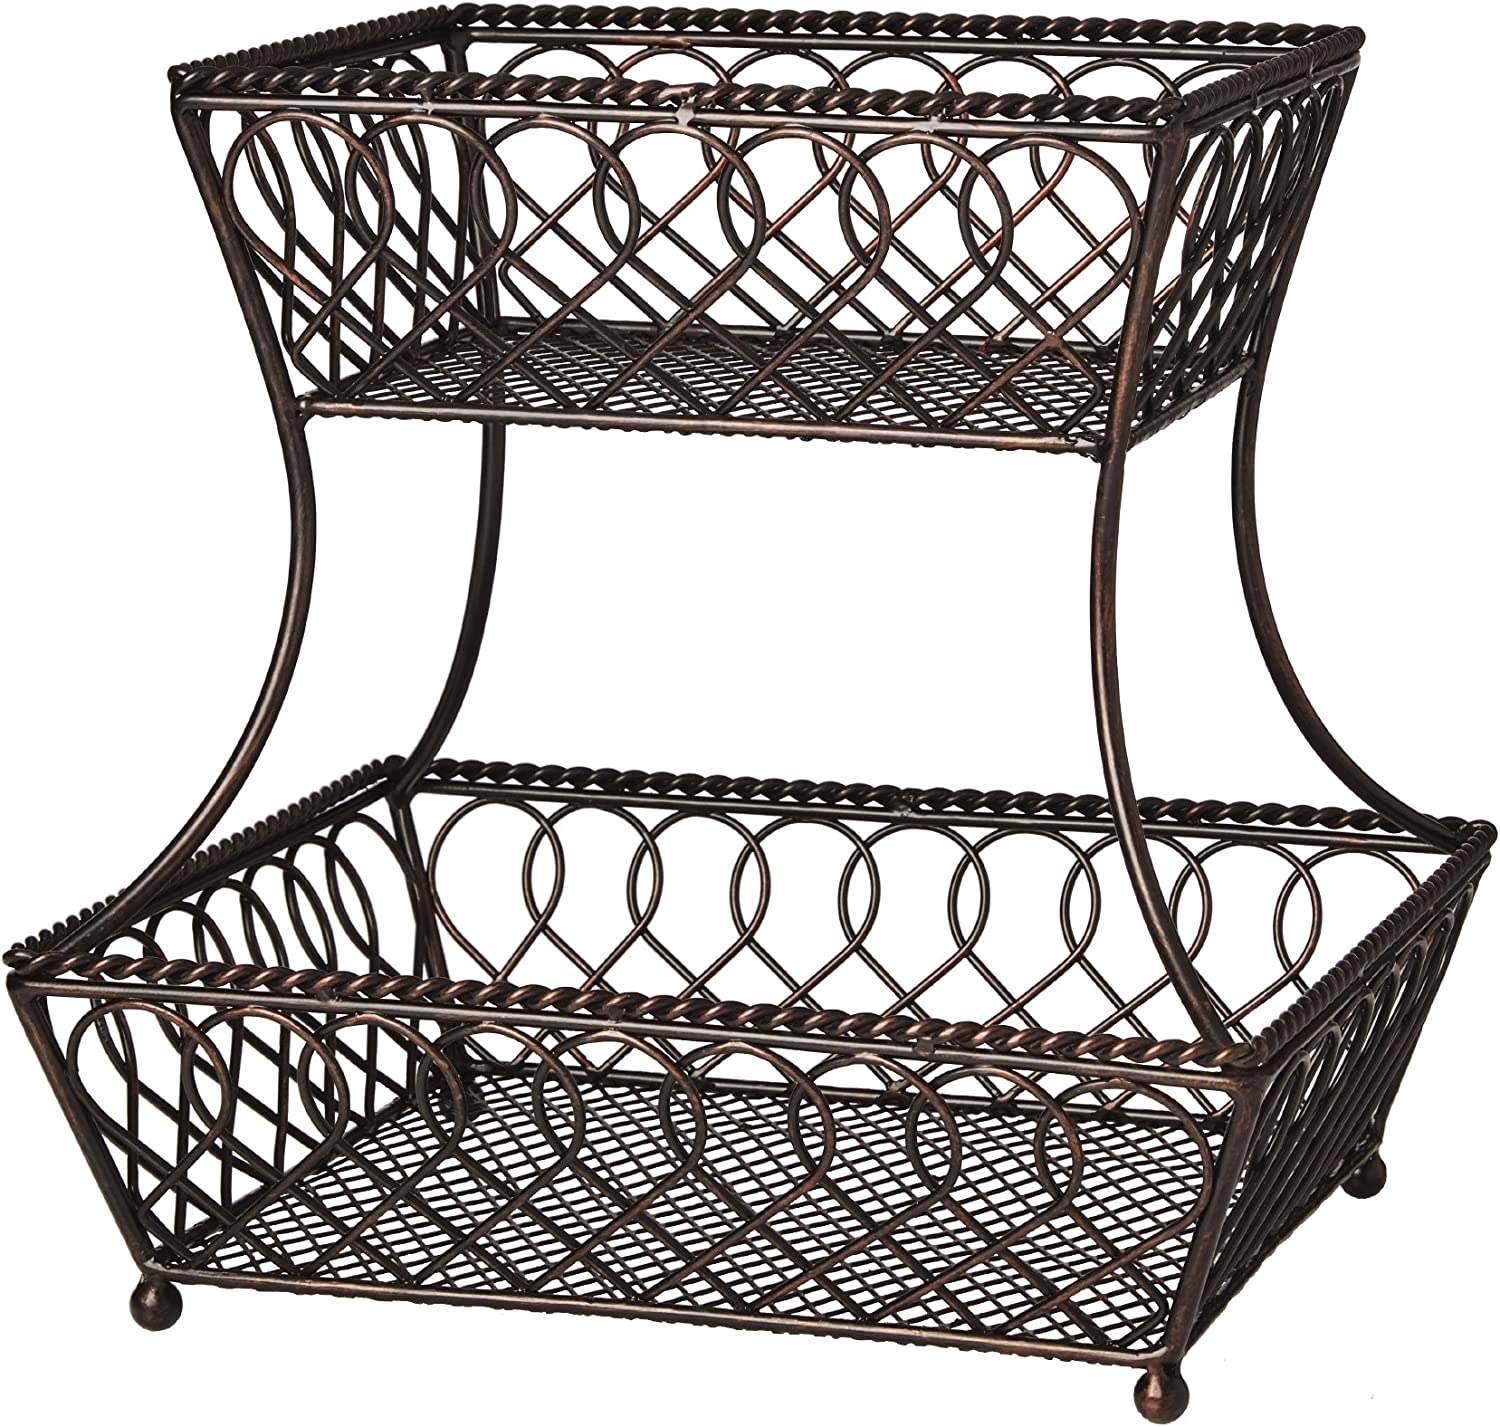 Gourmet Basics by Mikasa 5201553 Loop and Lattice 2-Tier Metal Rectangular Fruit Storage Basket, 14-Inch, Antique Black